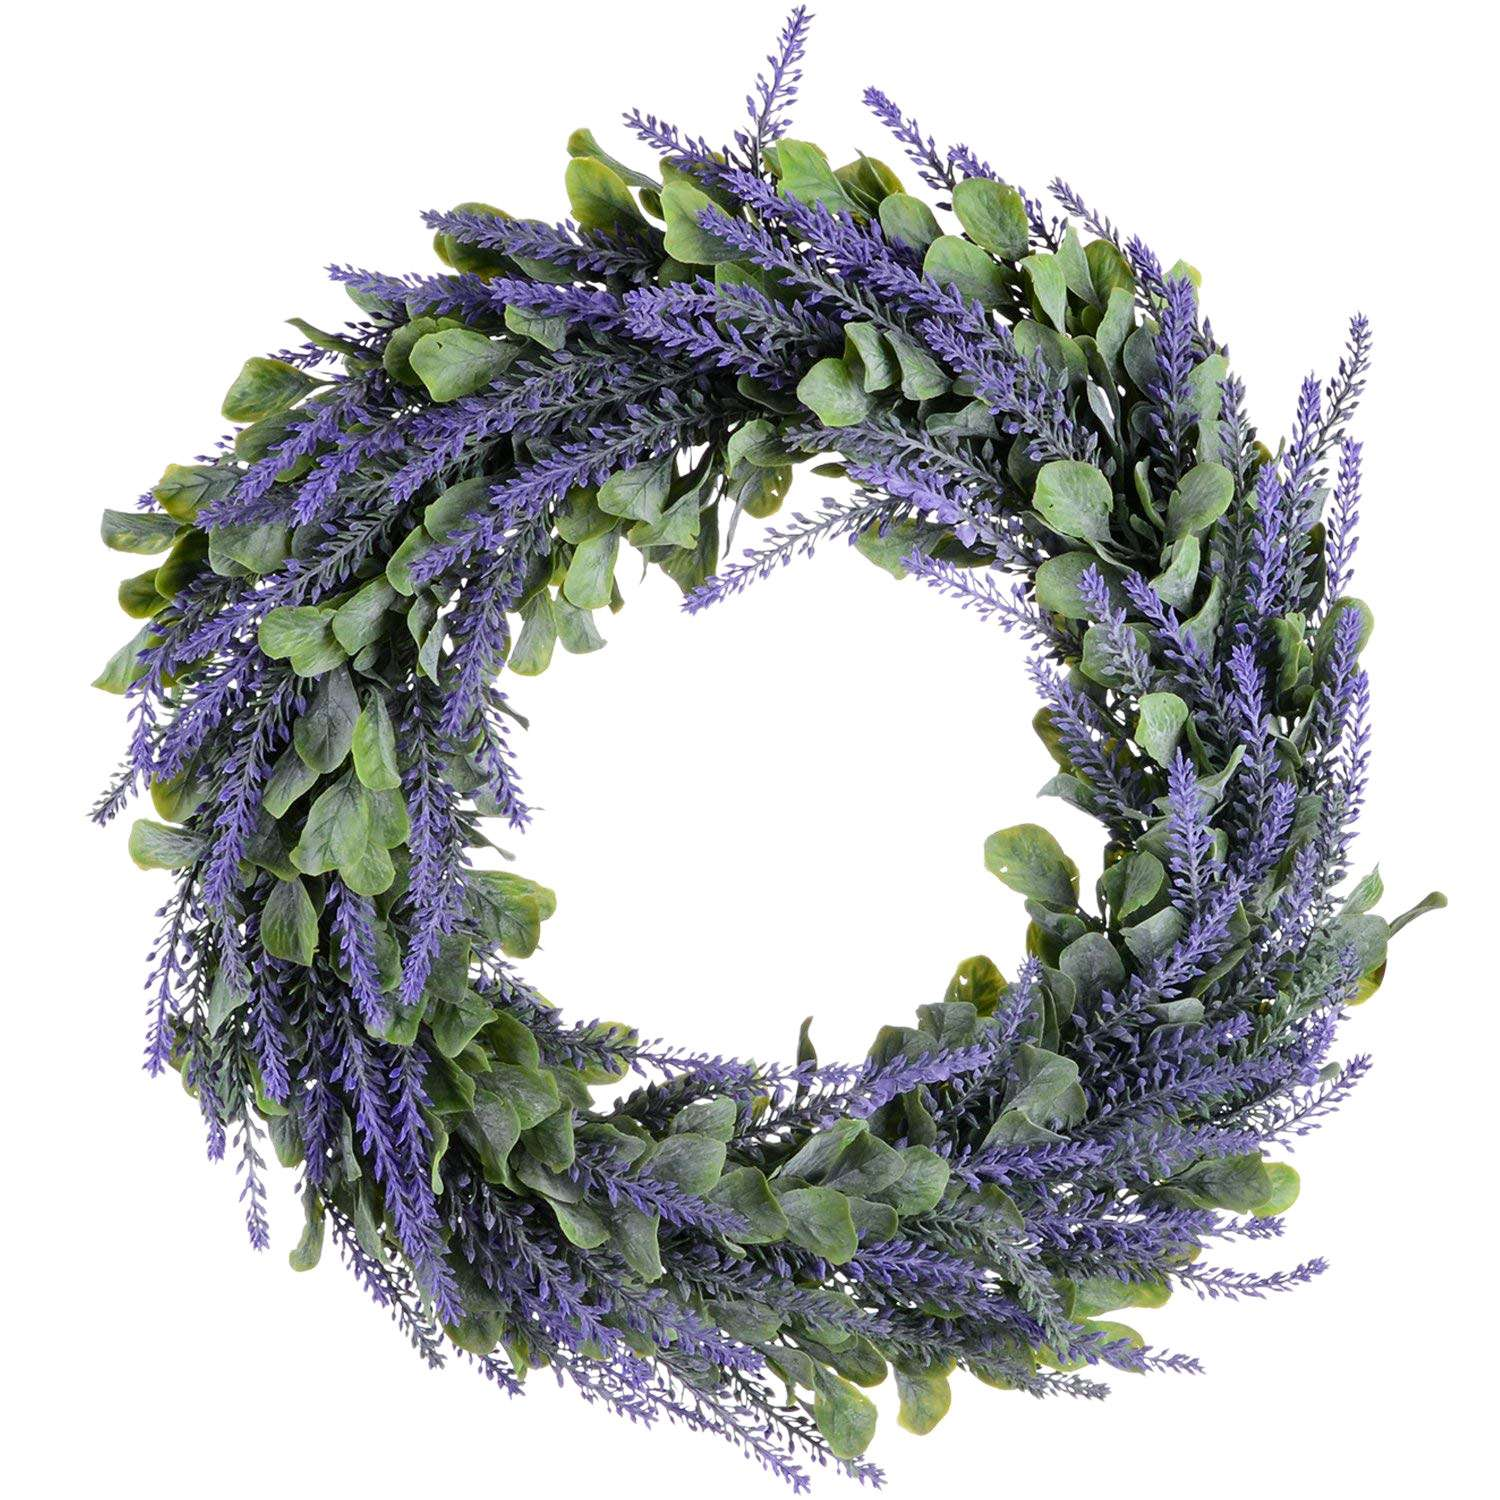 Artificial Wreath, Door Wreath 17 Inch Lavender Spring Wreath Round Wreath For The Front Door, Home Decor